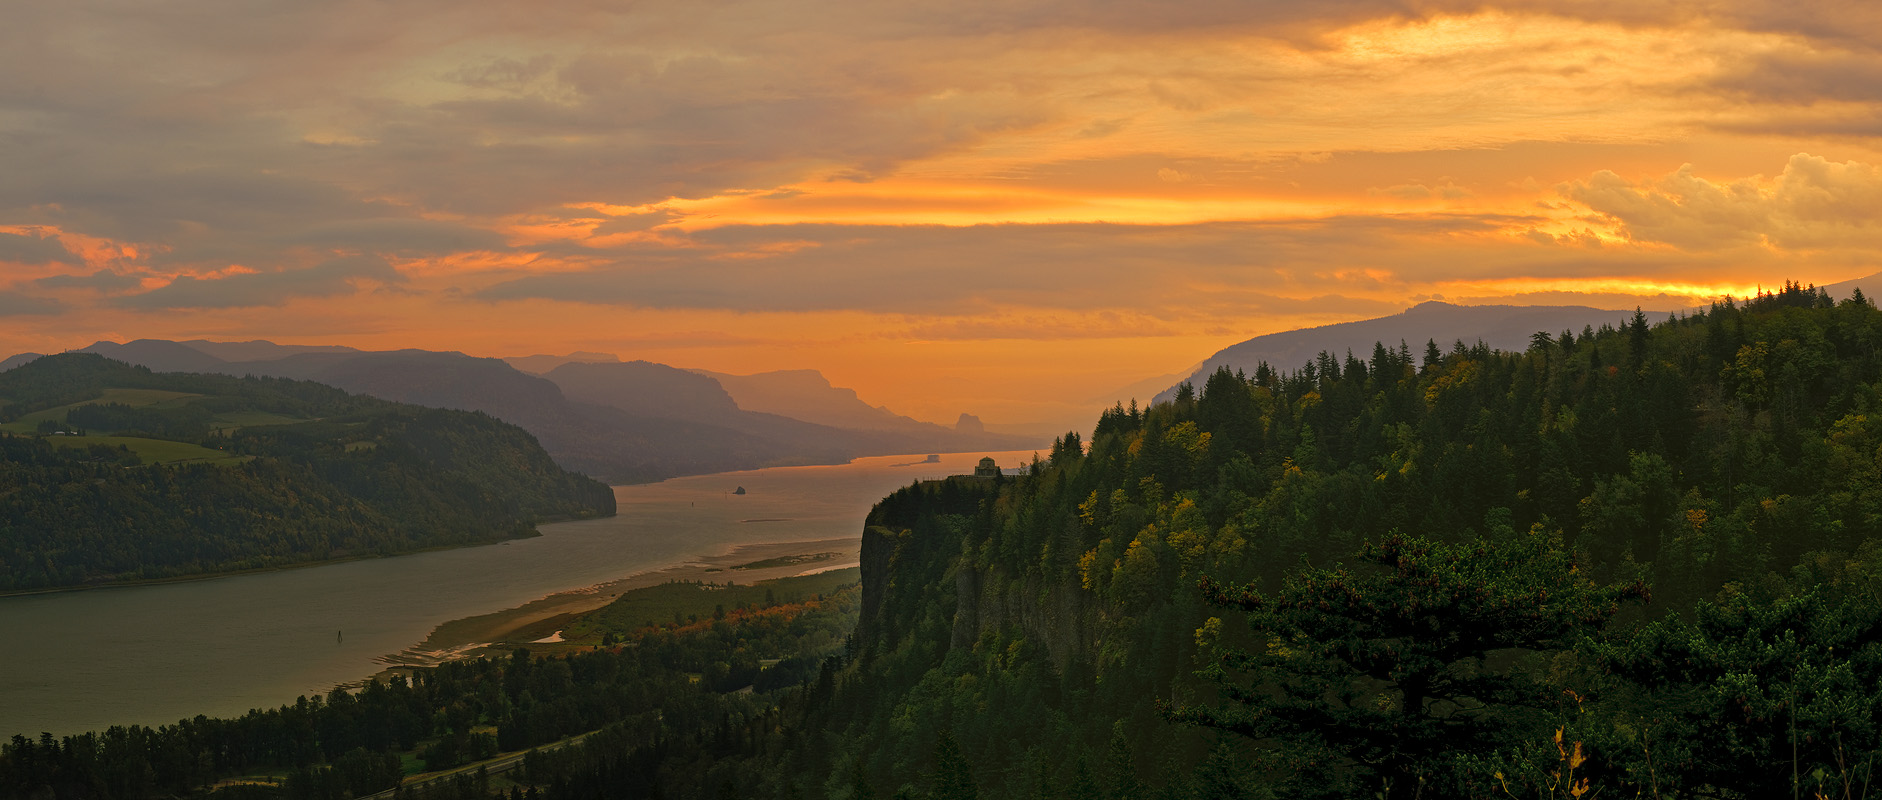 Columbia Gorge Sunrise 2009.jpg